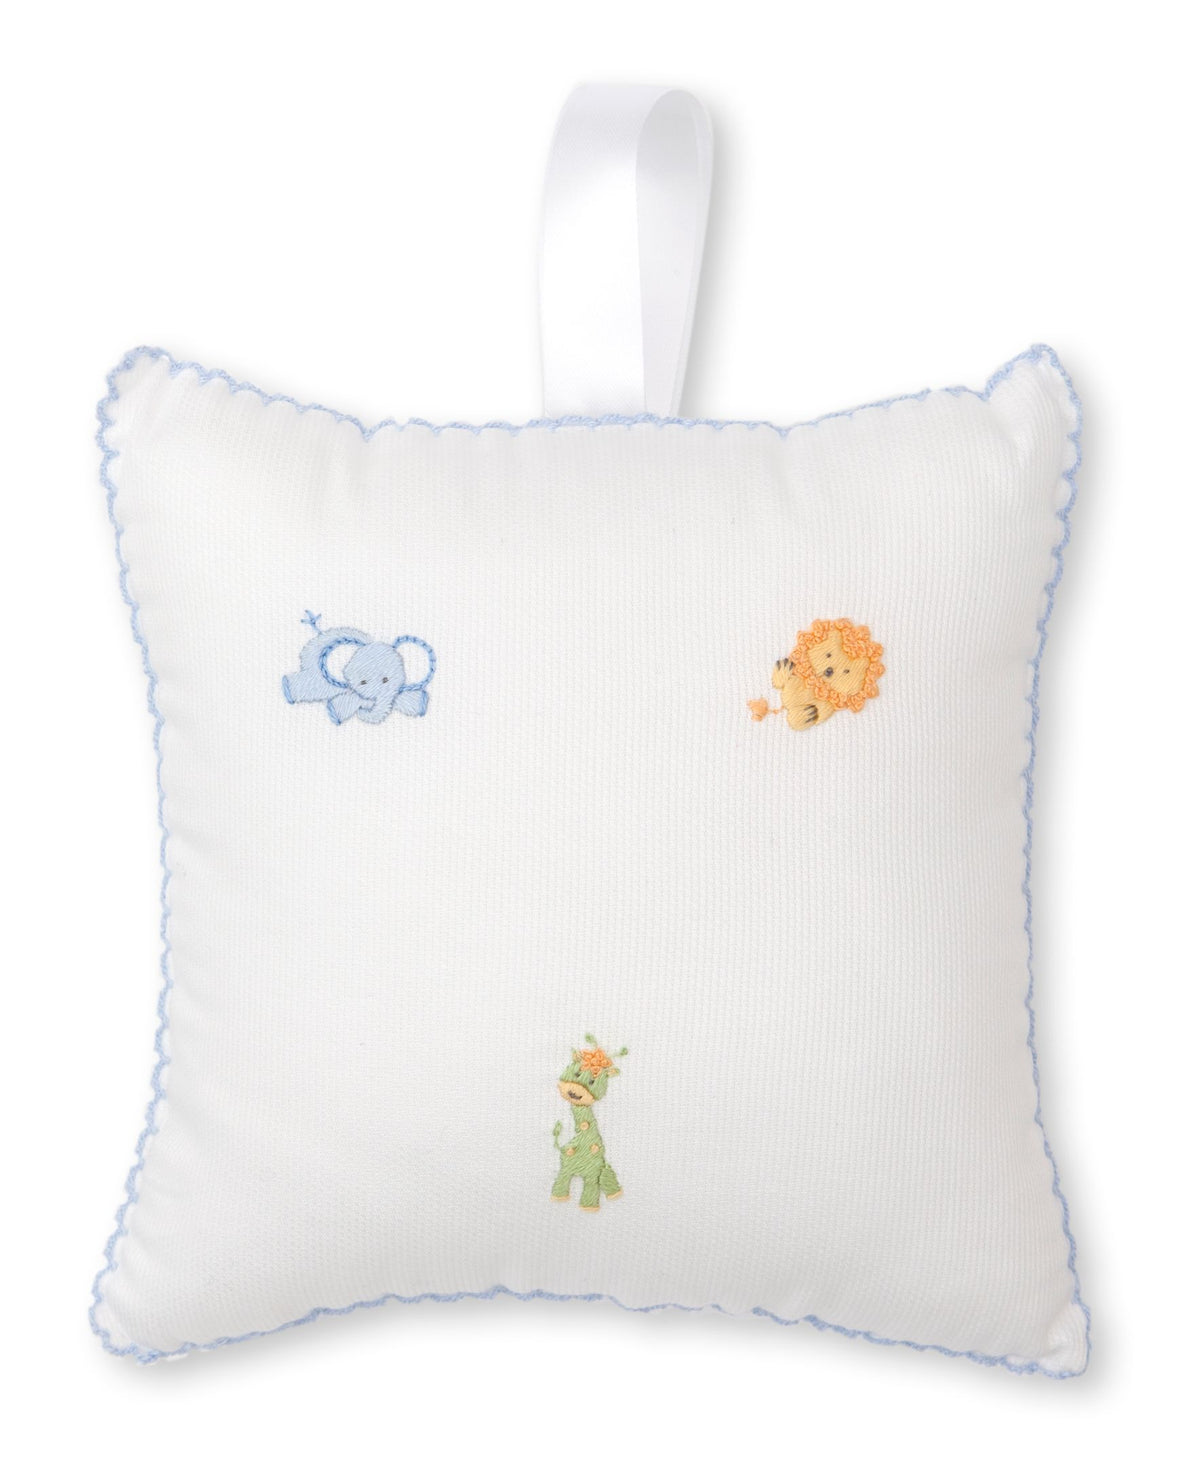 Kissy Kissy Jolly Jungle Musical Pillow White/Light Blue